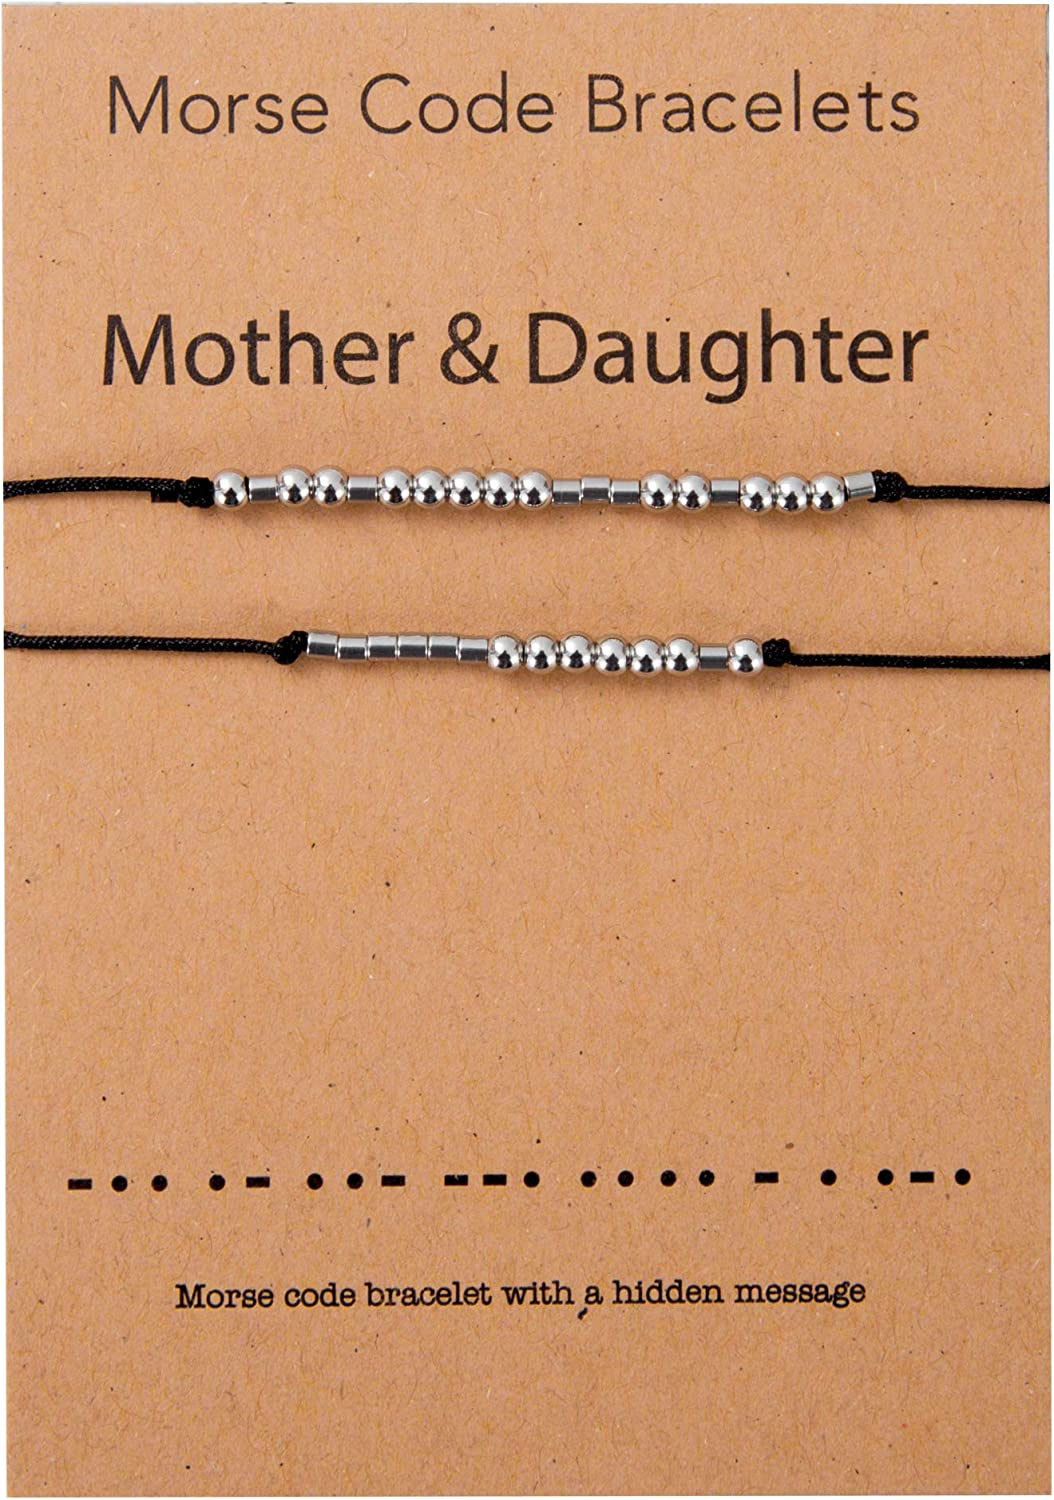 Mother Daughter Morse Code Bracelet Matching Jewelry Gift Set for 2 Handmade Stainless Steel Beads on Silk Cord …